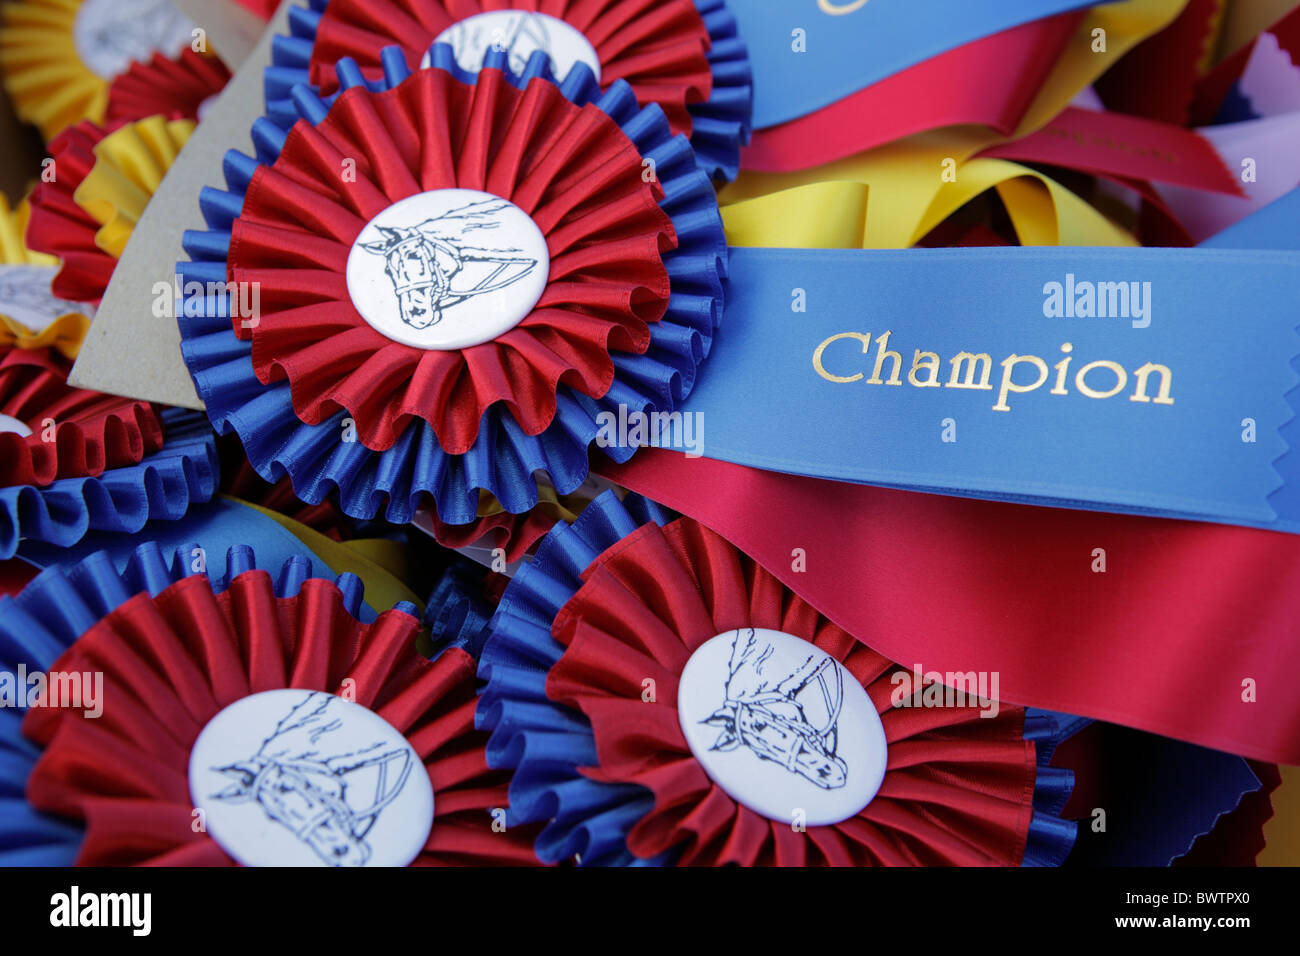 Equestrian champion ribbon - Stock Image